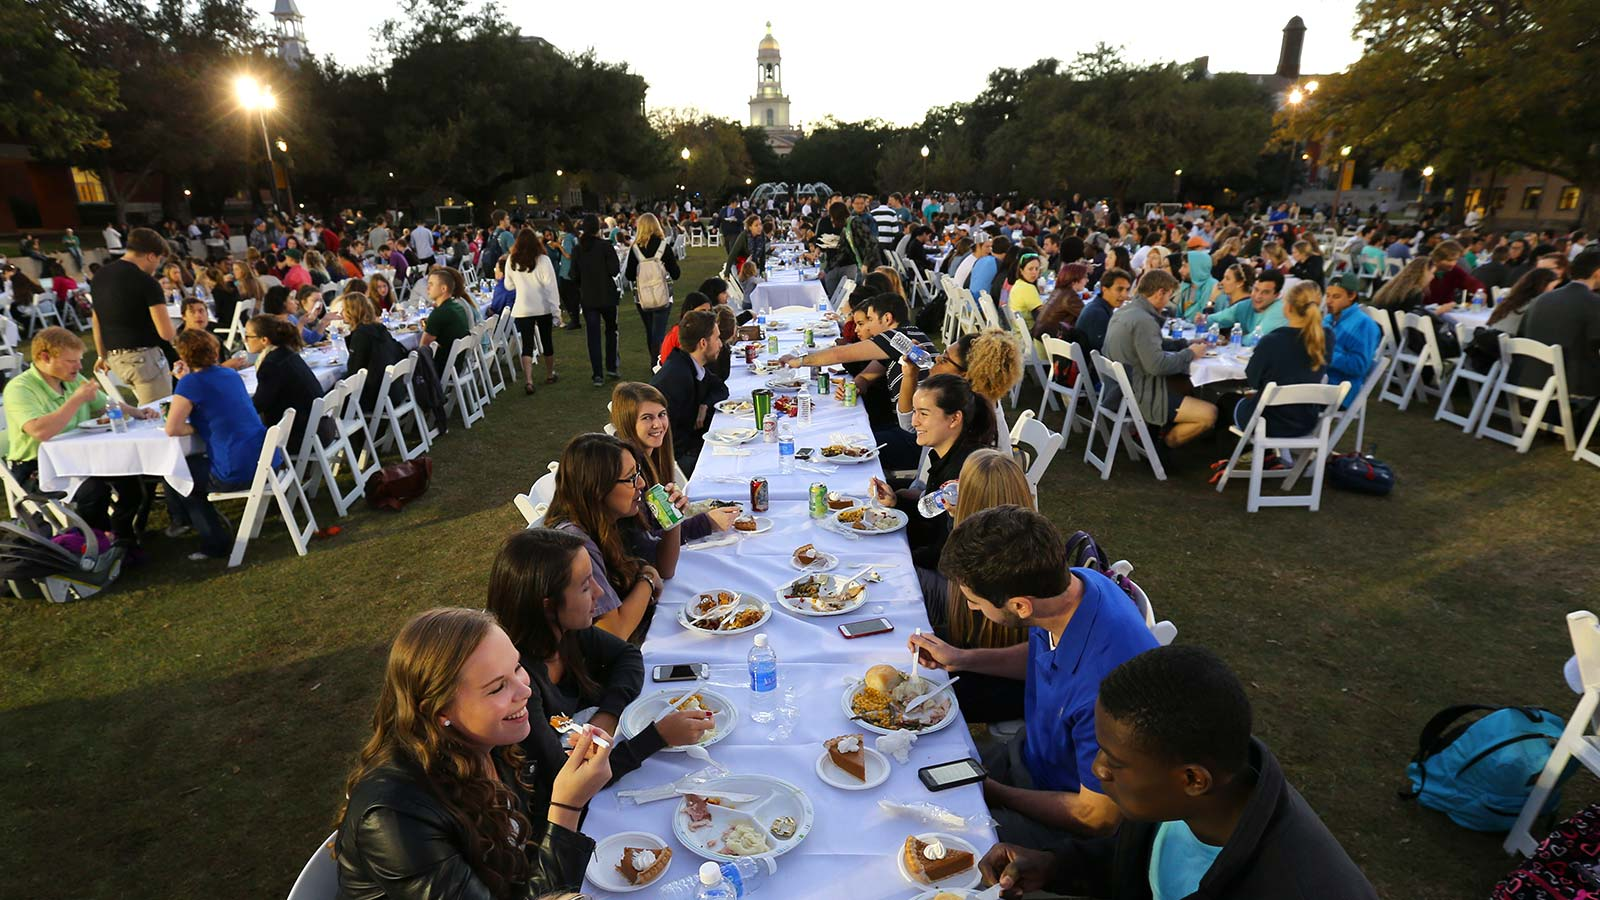 The Baylor community gathers as a family to enjoy some fall festivities and share a Thanksgiving meal.